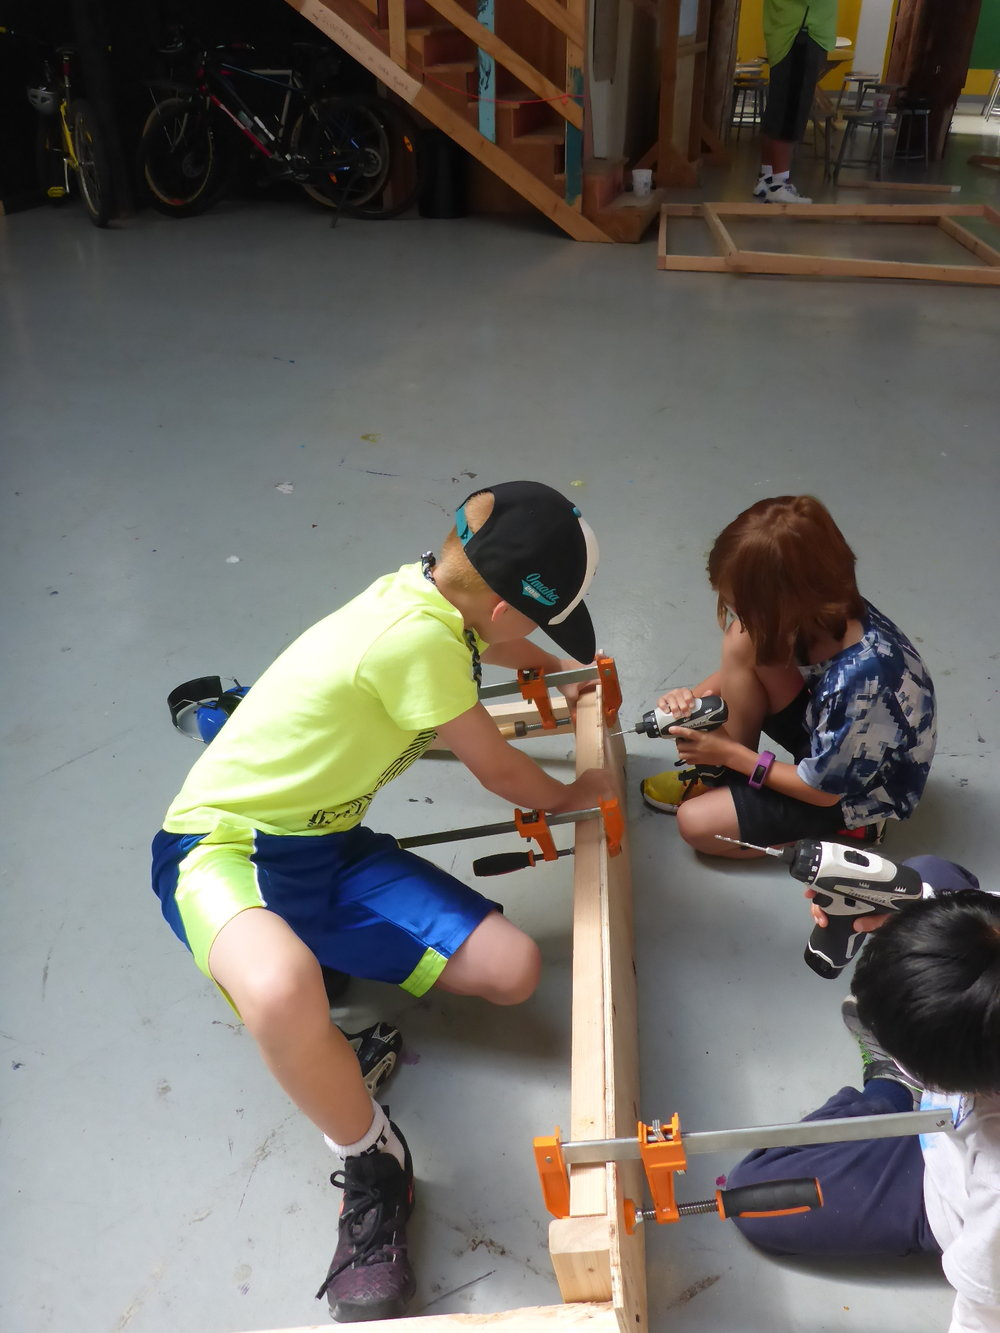 """Meanwhile, Carter, Graham and Preston added a 2x3 frame underneath the plywood seat of their bench to better support the sitter. """"We heard a creak when we tested it, so we added more supports."""" Good call!"""